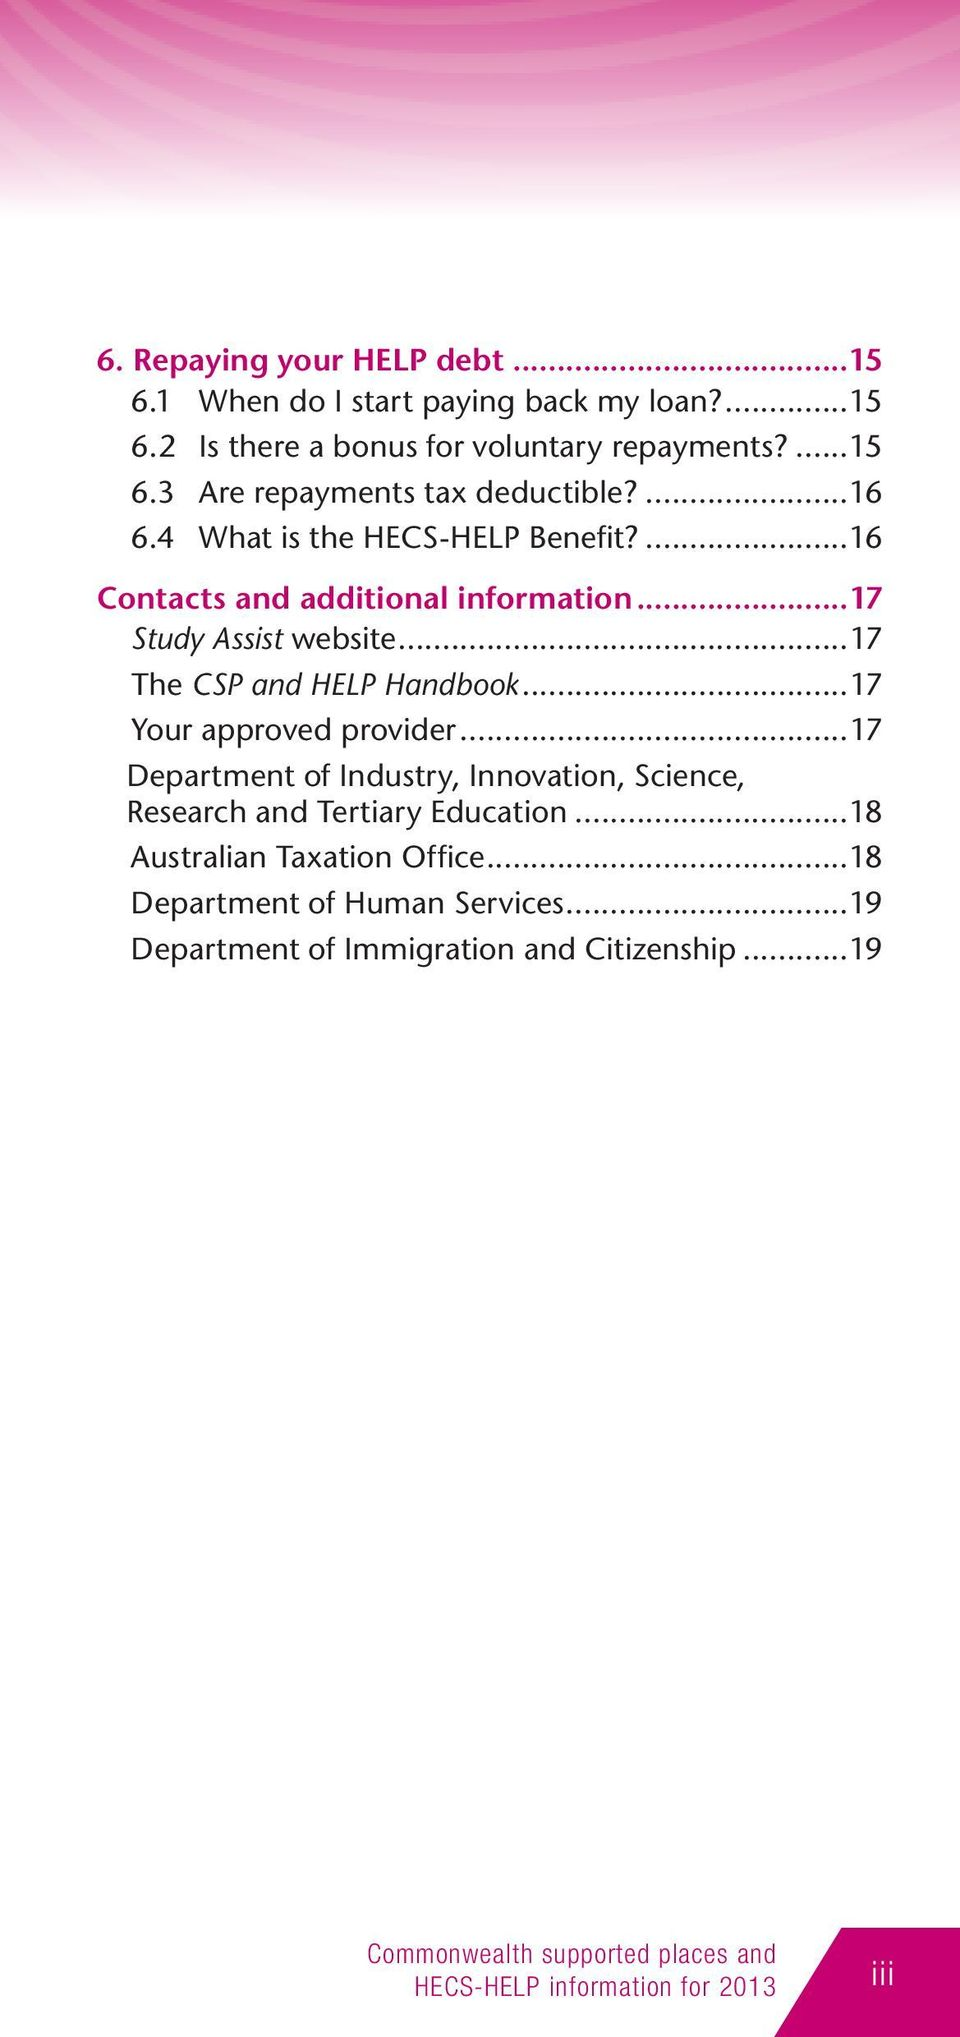 ..17 Your approved provider...17 Department of Industry, Innovation, Science, Research and Tertiary Education...18 Australian Taxation Office.